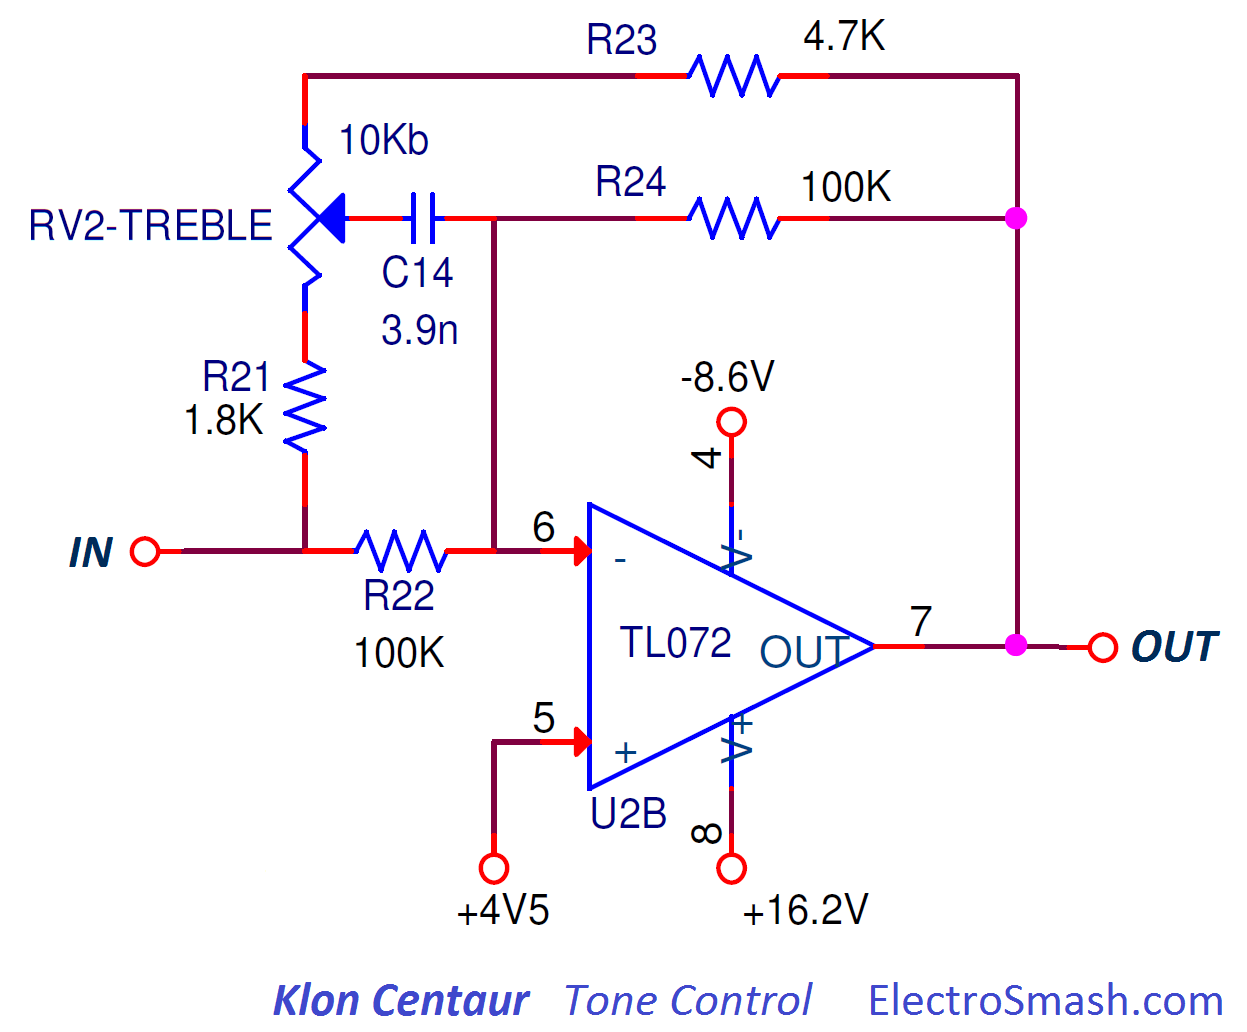 ElectroSmash - Klon Cenatur Analysis